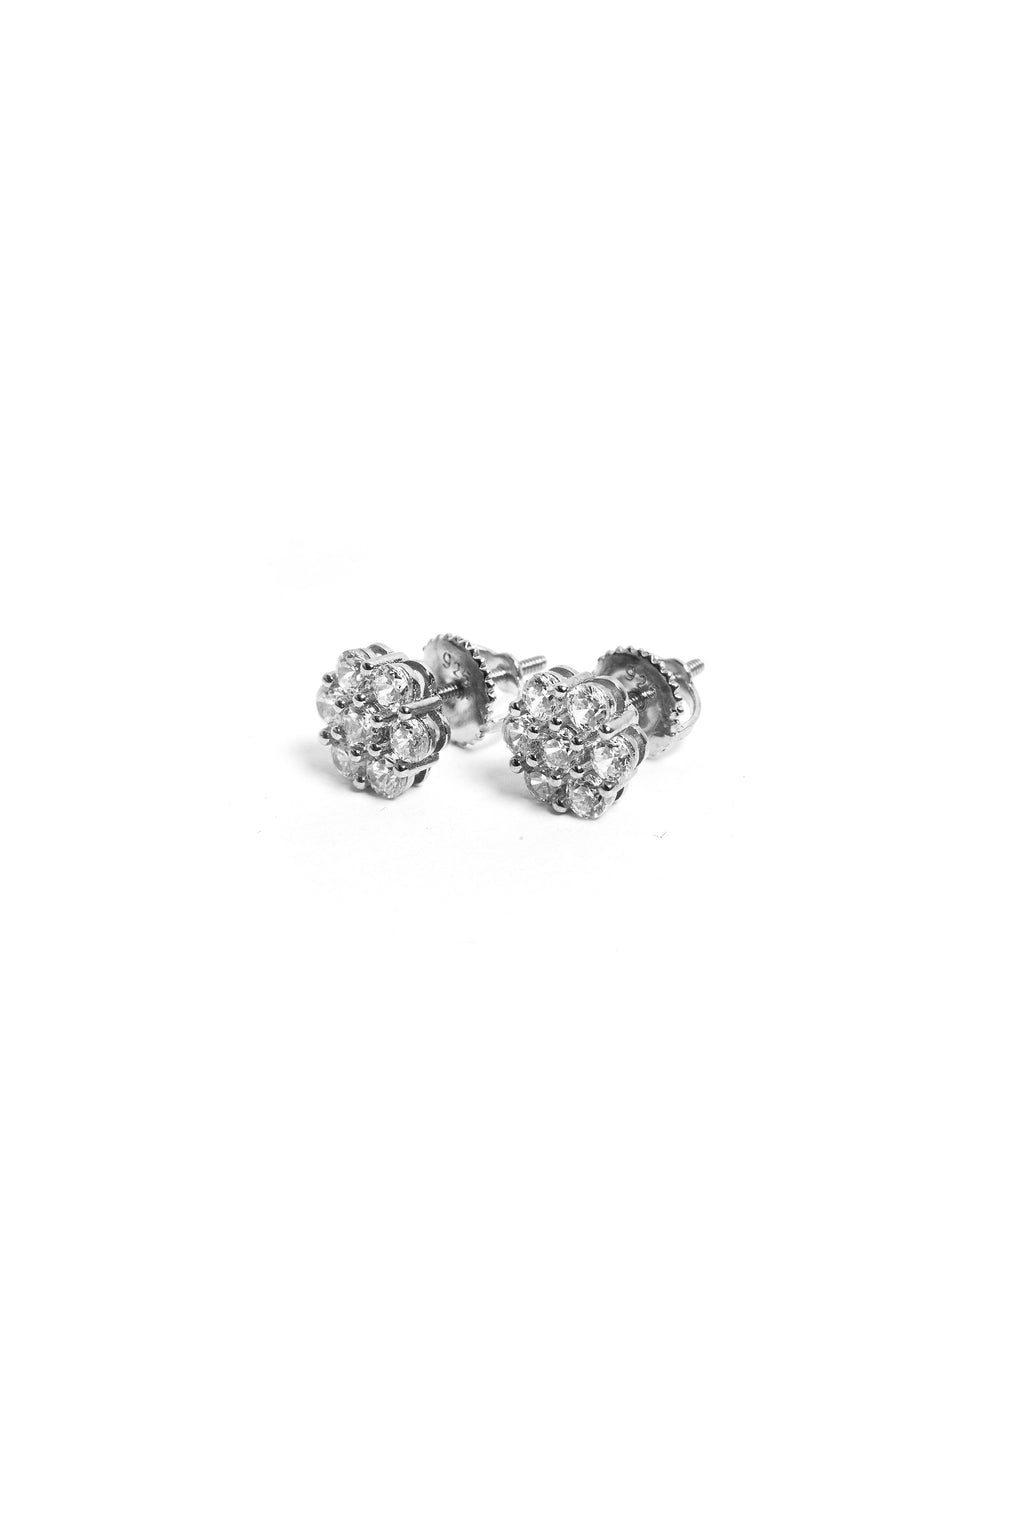 ZANE SILVER EARRINGS